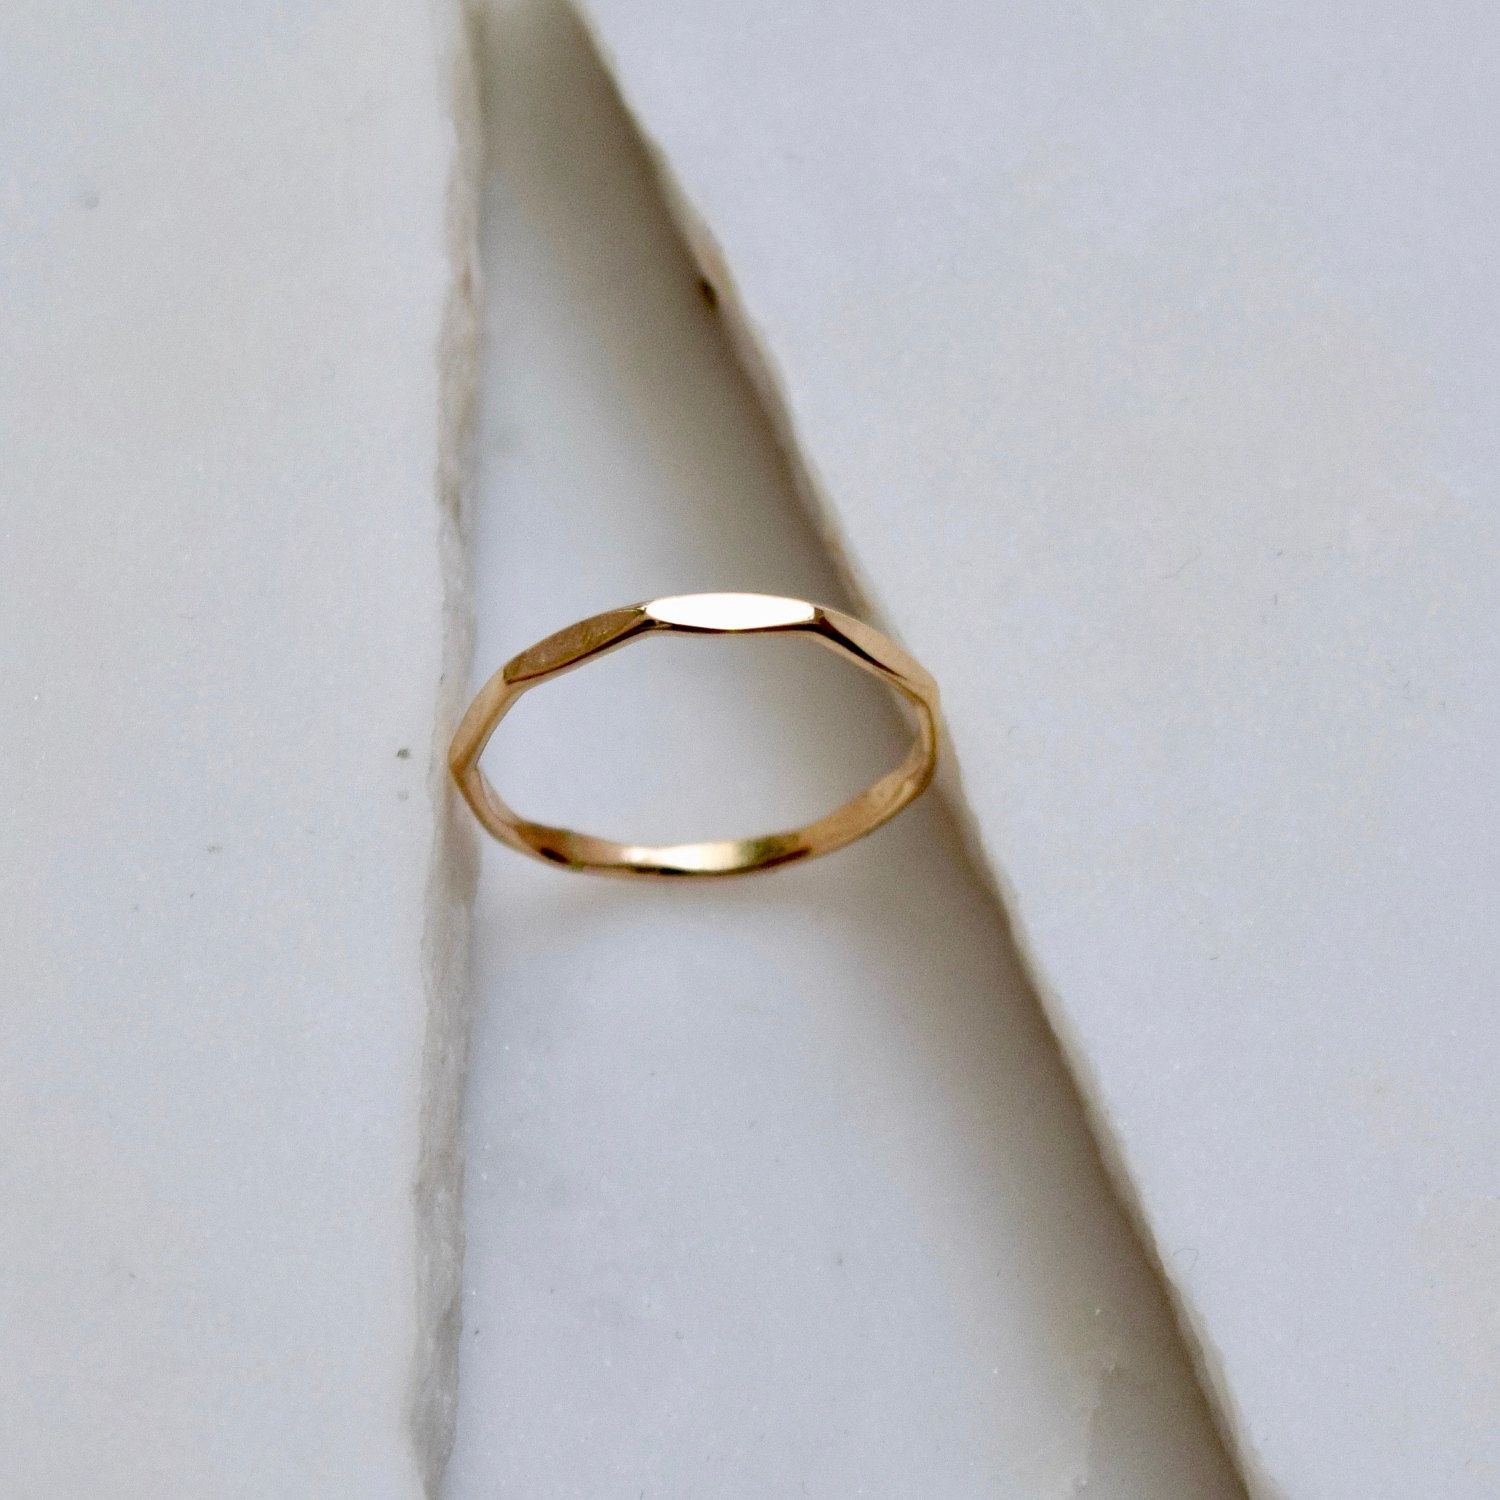 14k Gold Ring Simple Wedding Ring Simple Gold Ring Solid Etsy Gold Rings Simple Solid Gold Rings Plain Gold Ring